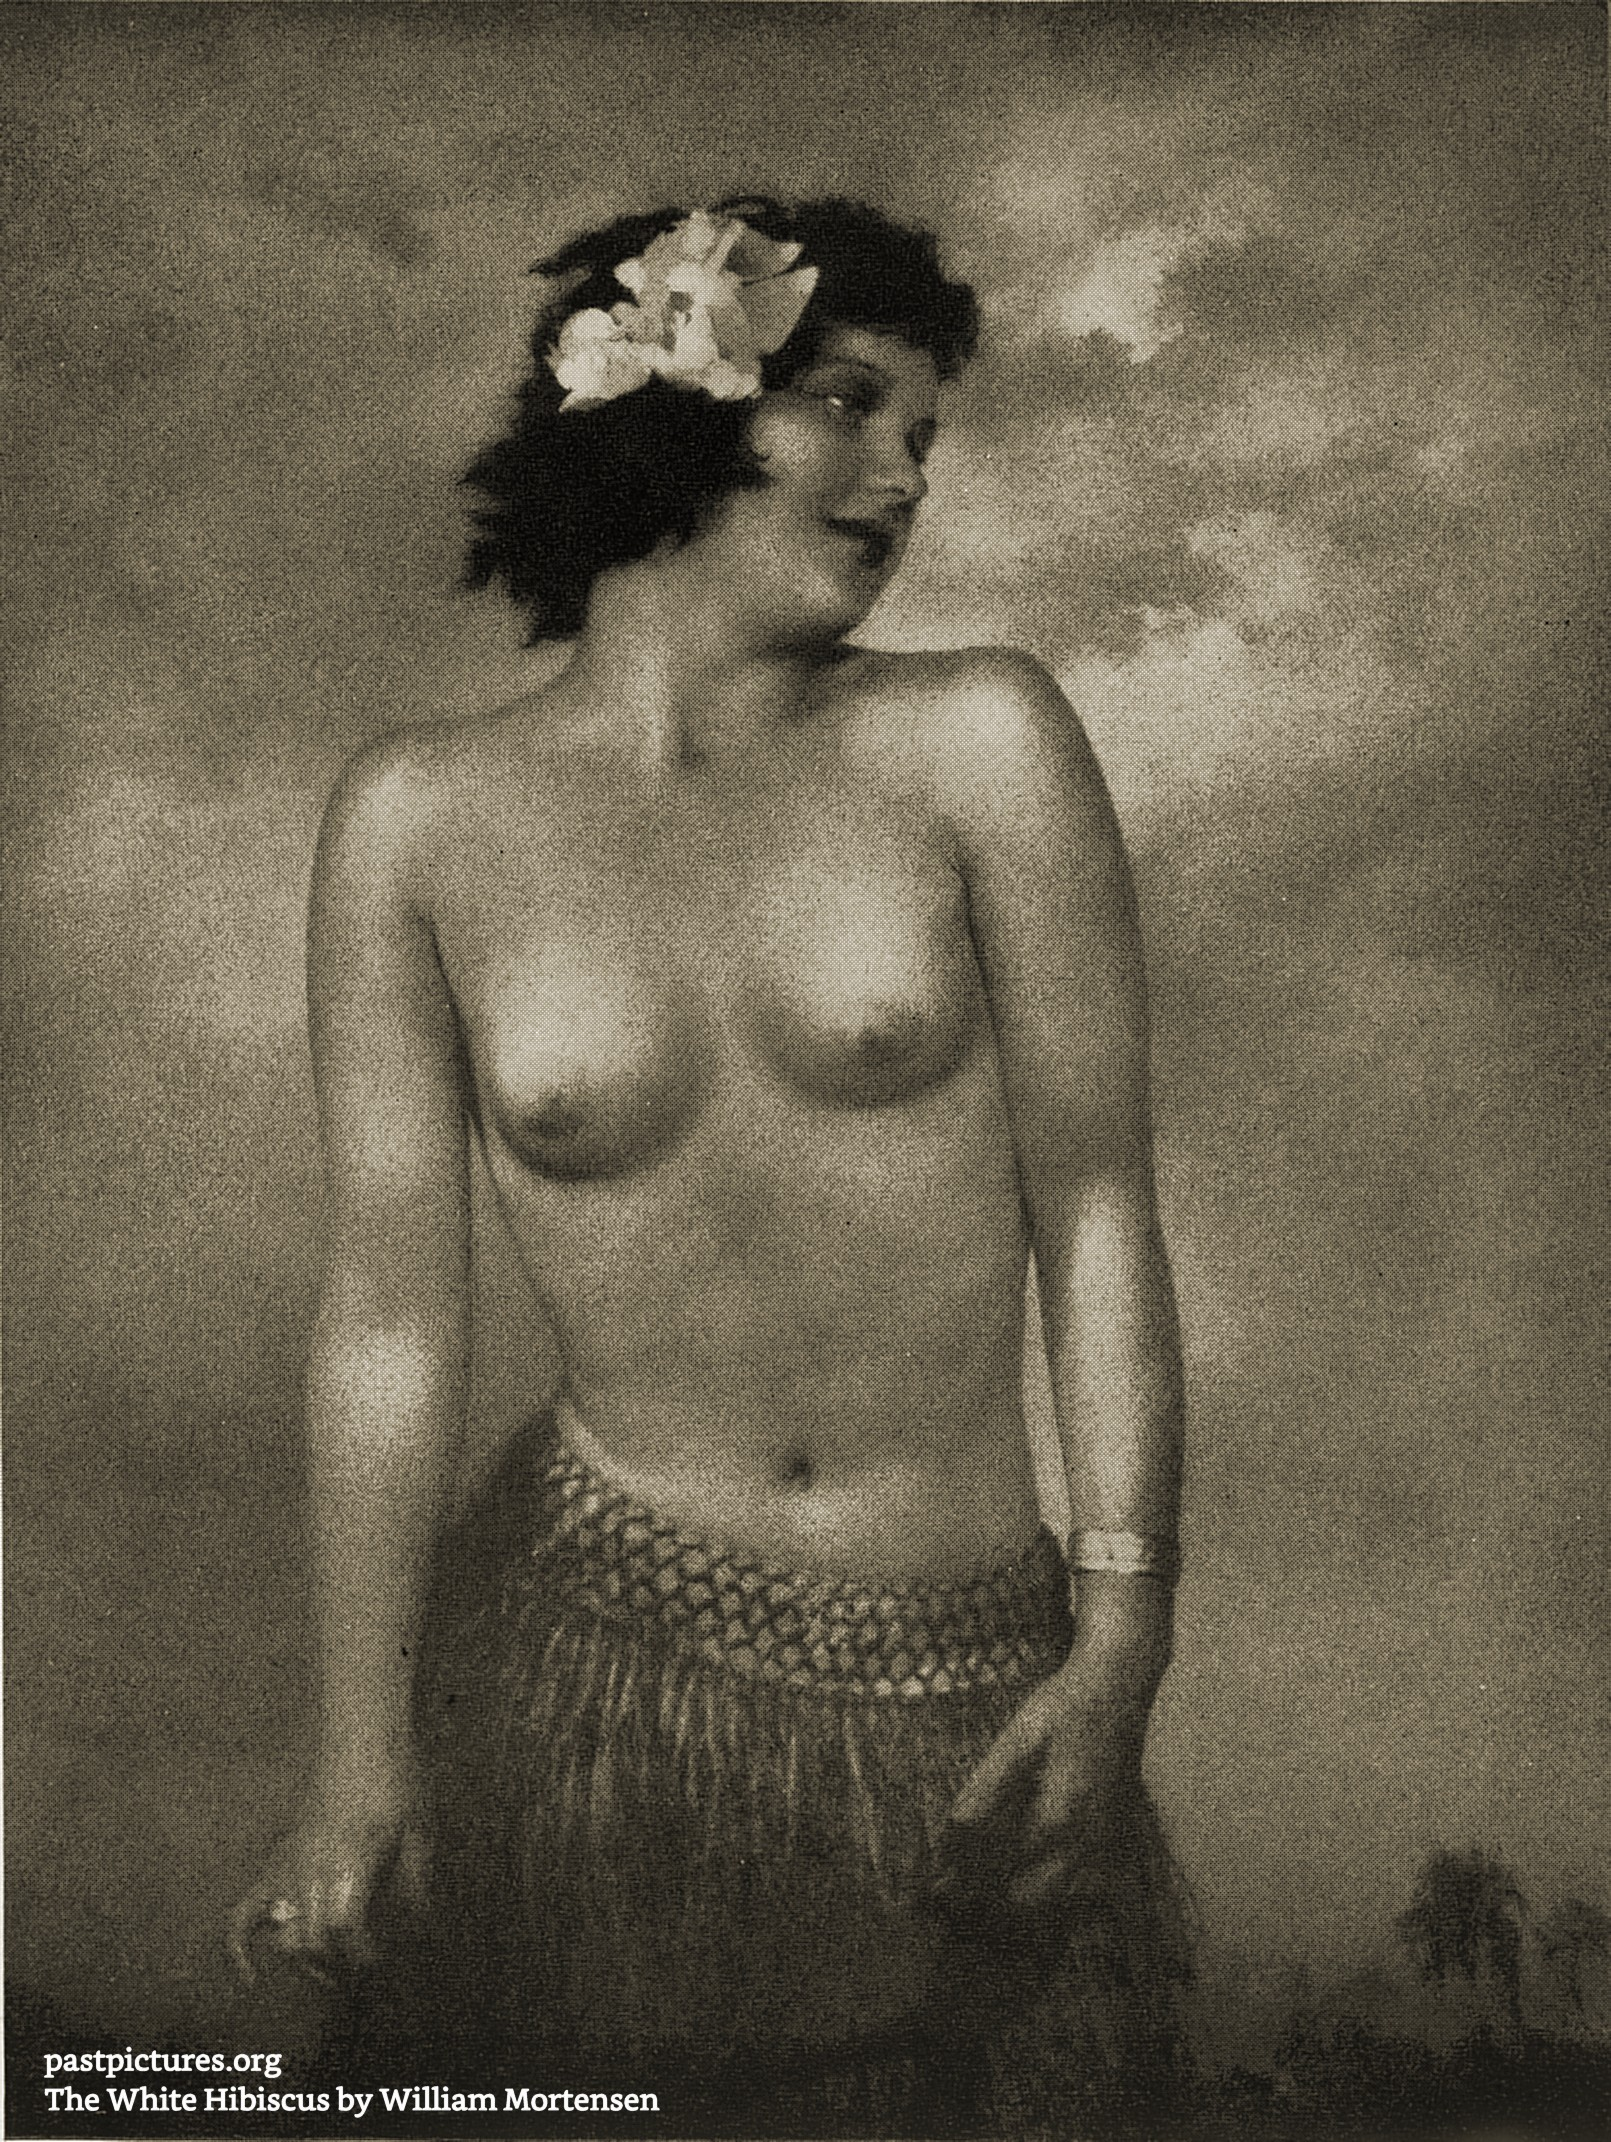 The White Hibiscus by William Mortensen about 1937